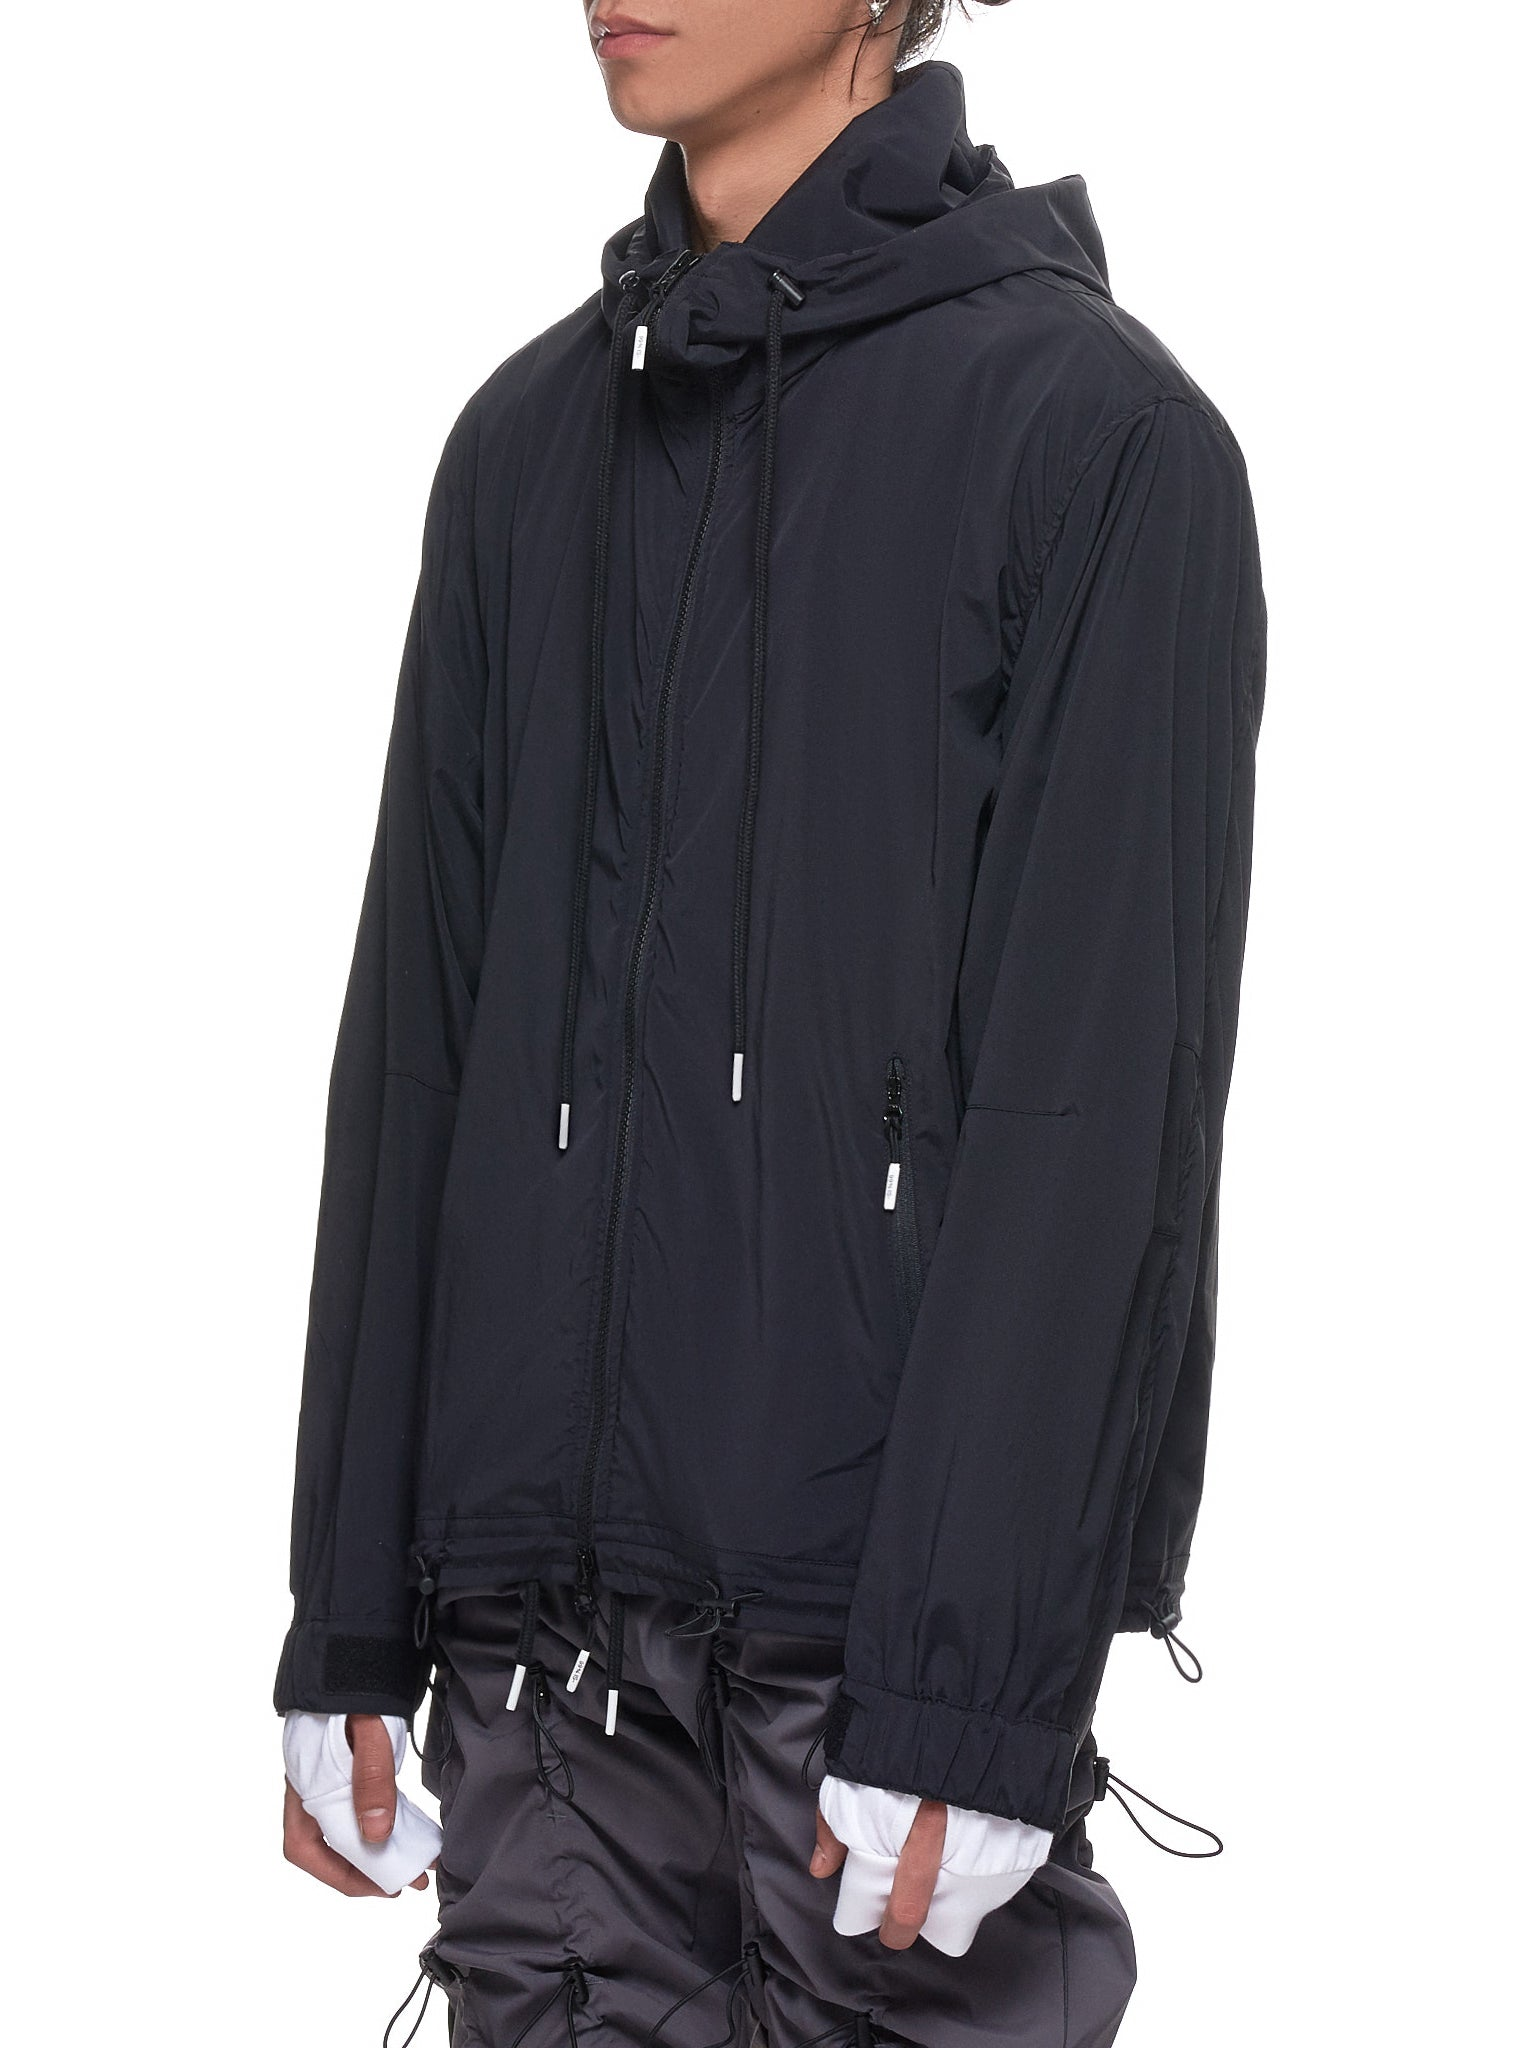 Cord Lock Windbreaker (NN13-HD06-BLACK)